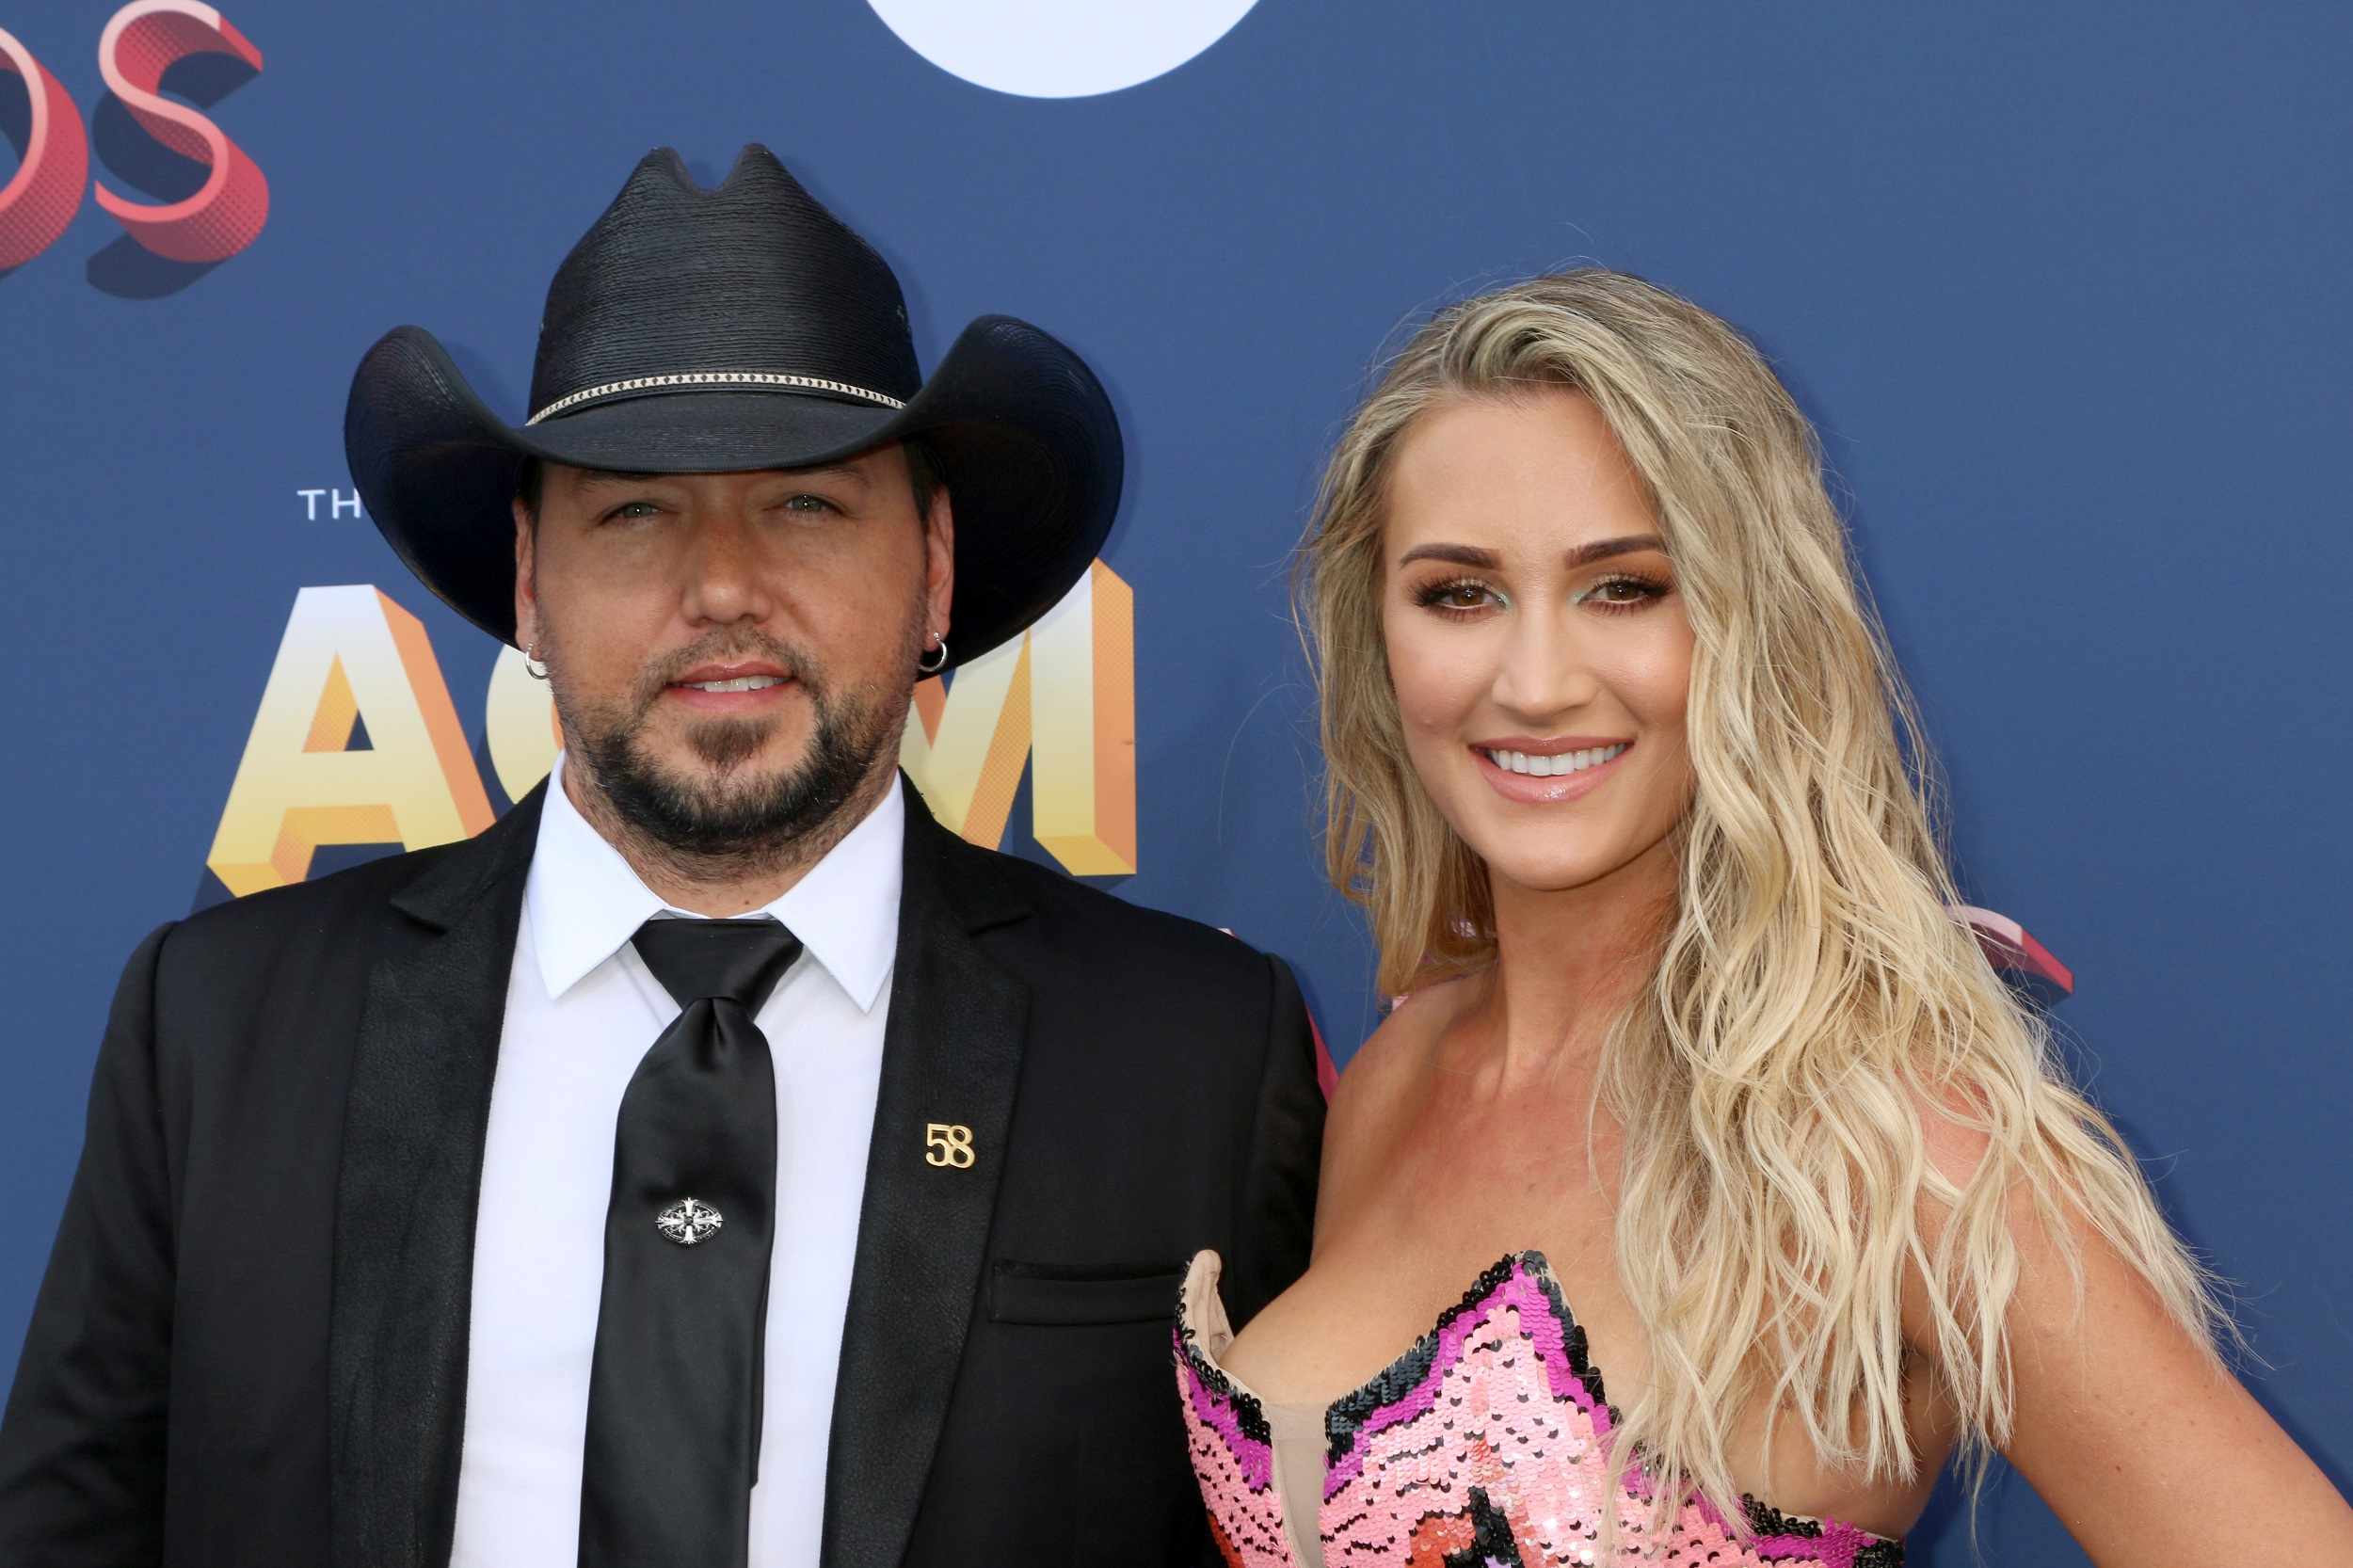 Baby Girl on the Way for Jason Aldean and Wife Brittany